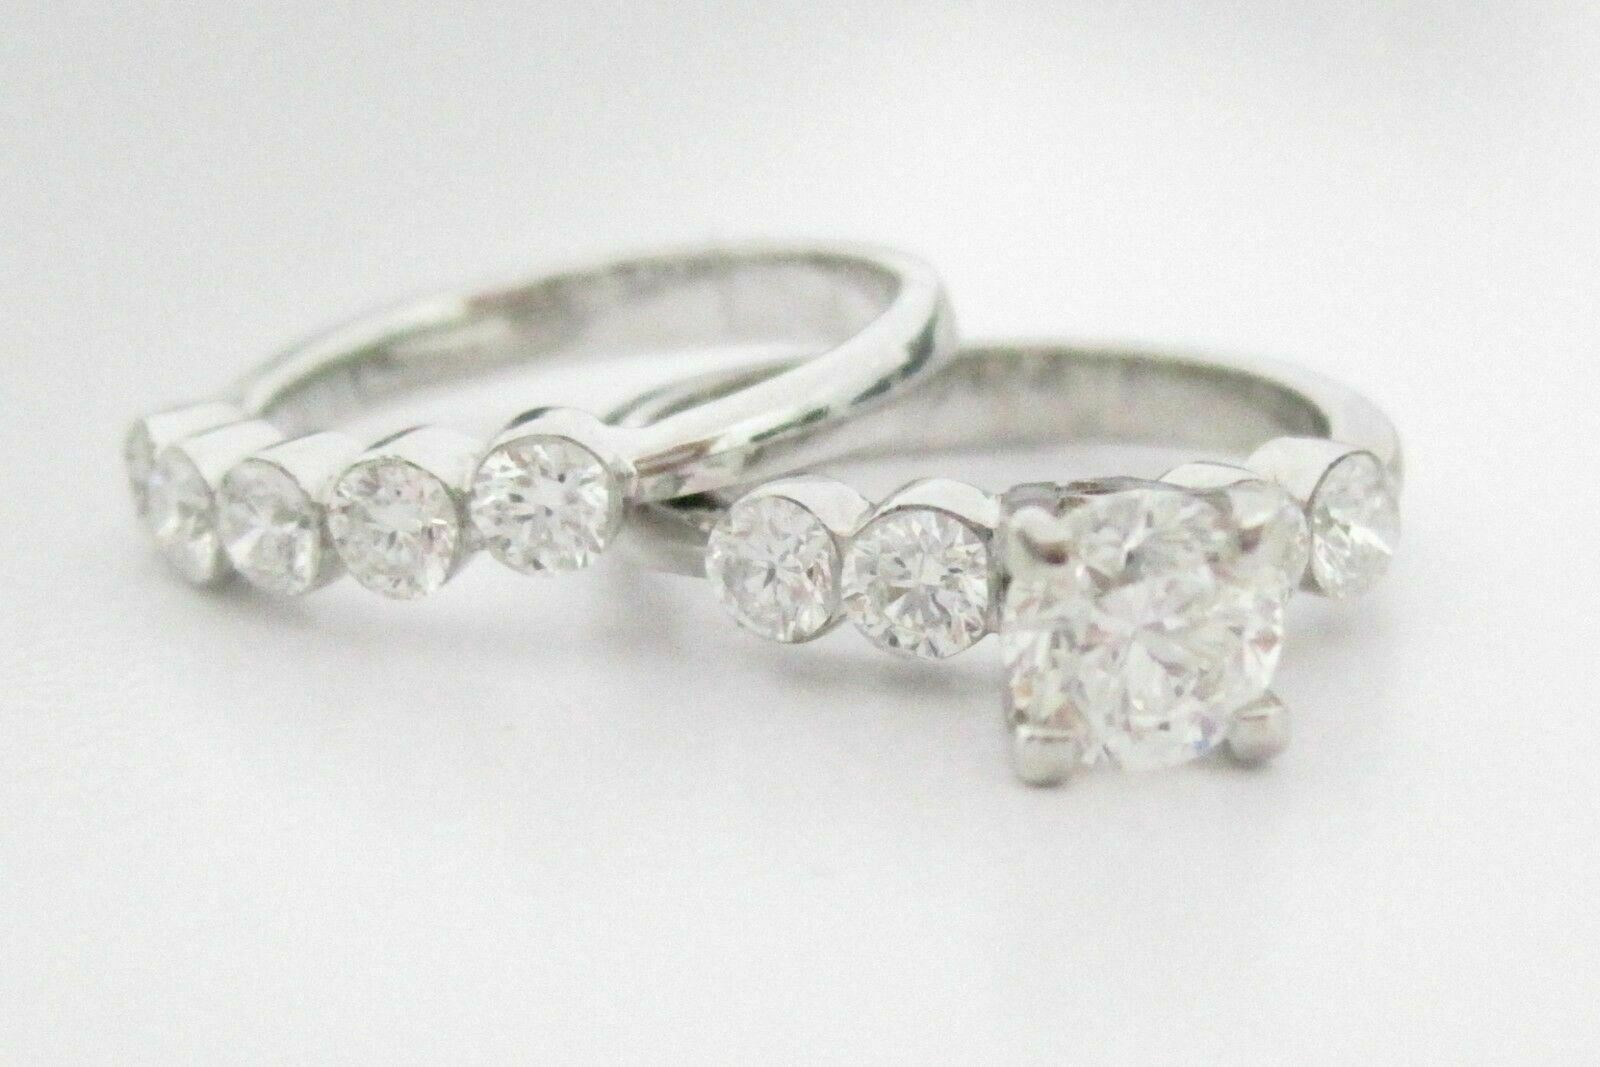 2.25 TCW 2 Piece Round Cut Diamond Wedding Ring Set G SI-1 Size 5.5 18k WGold